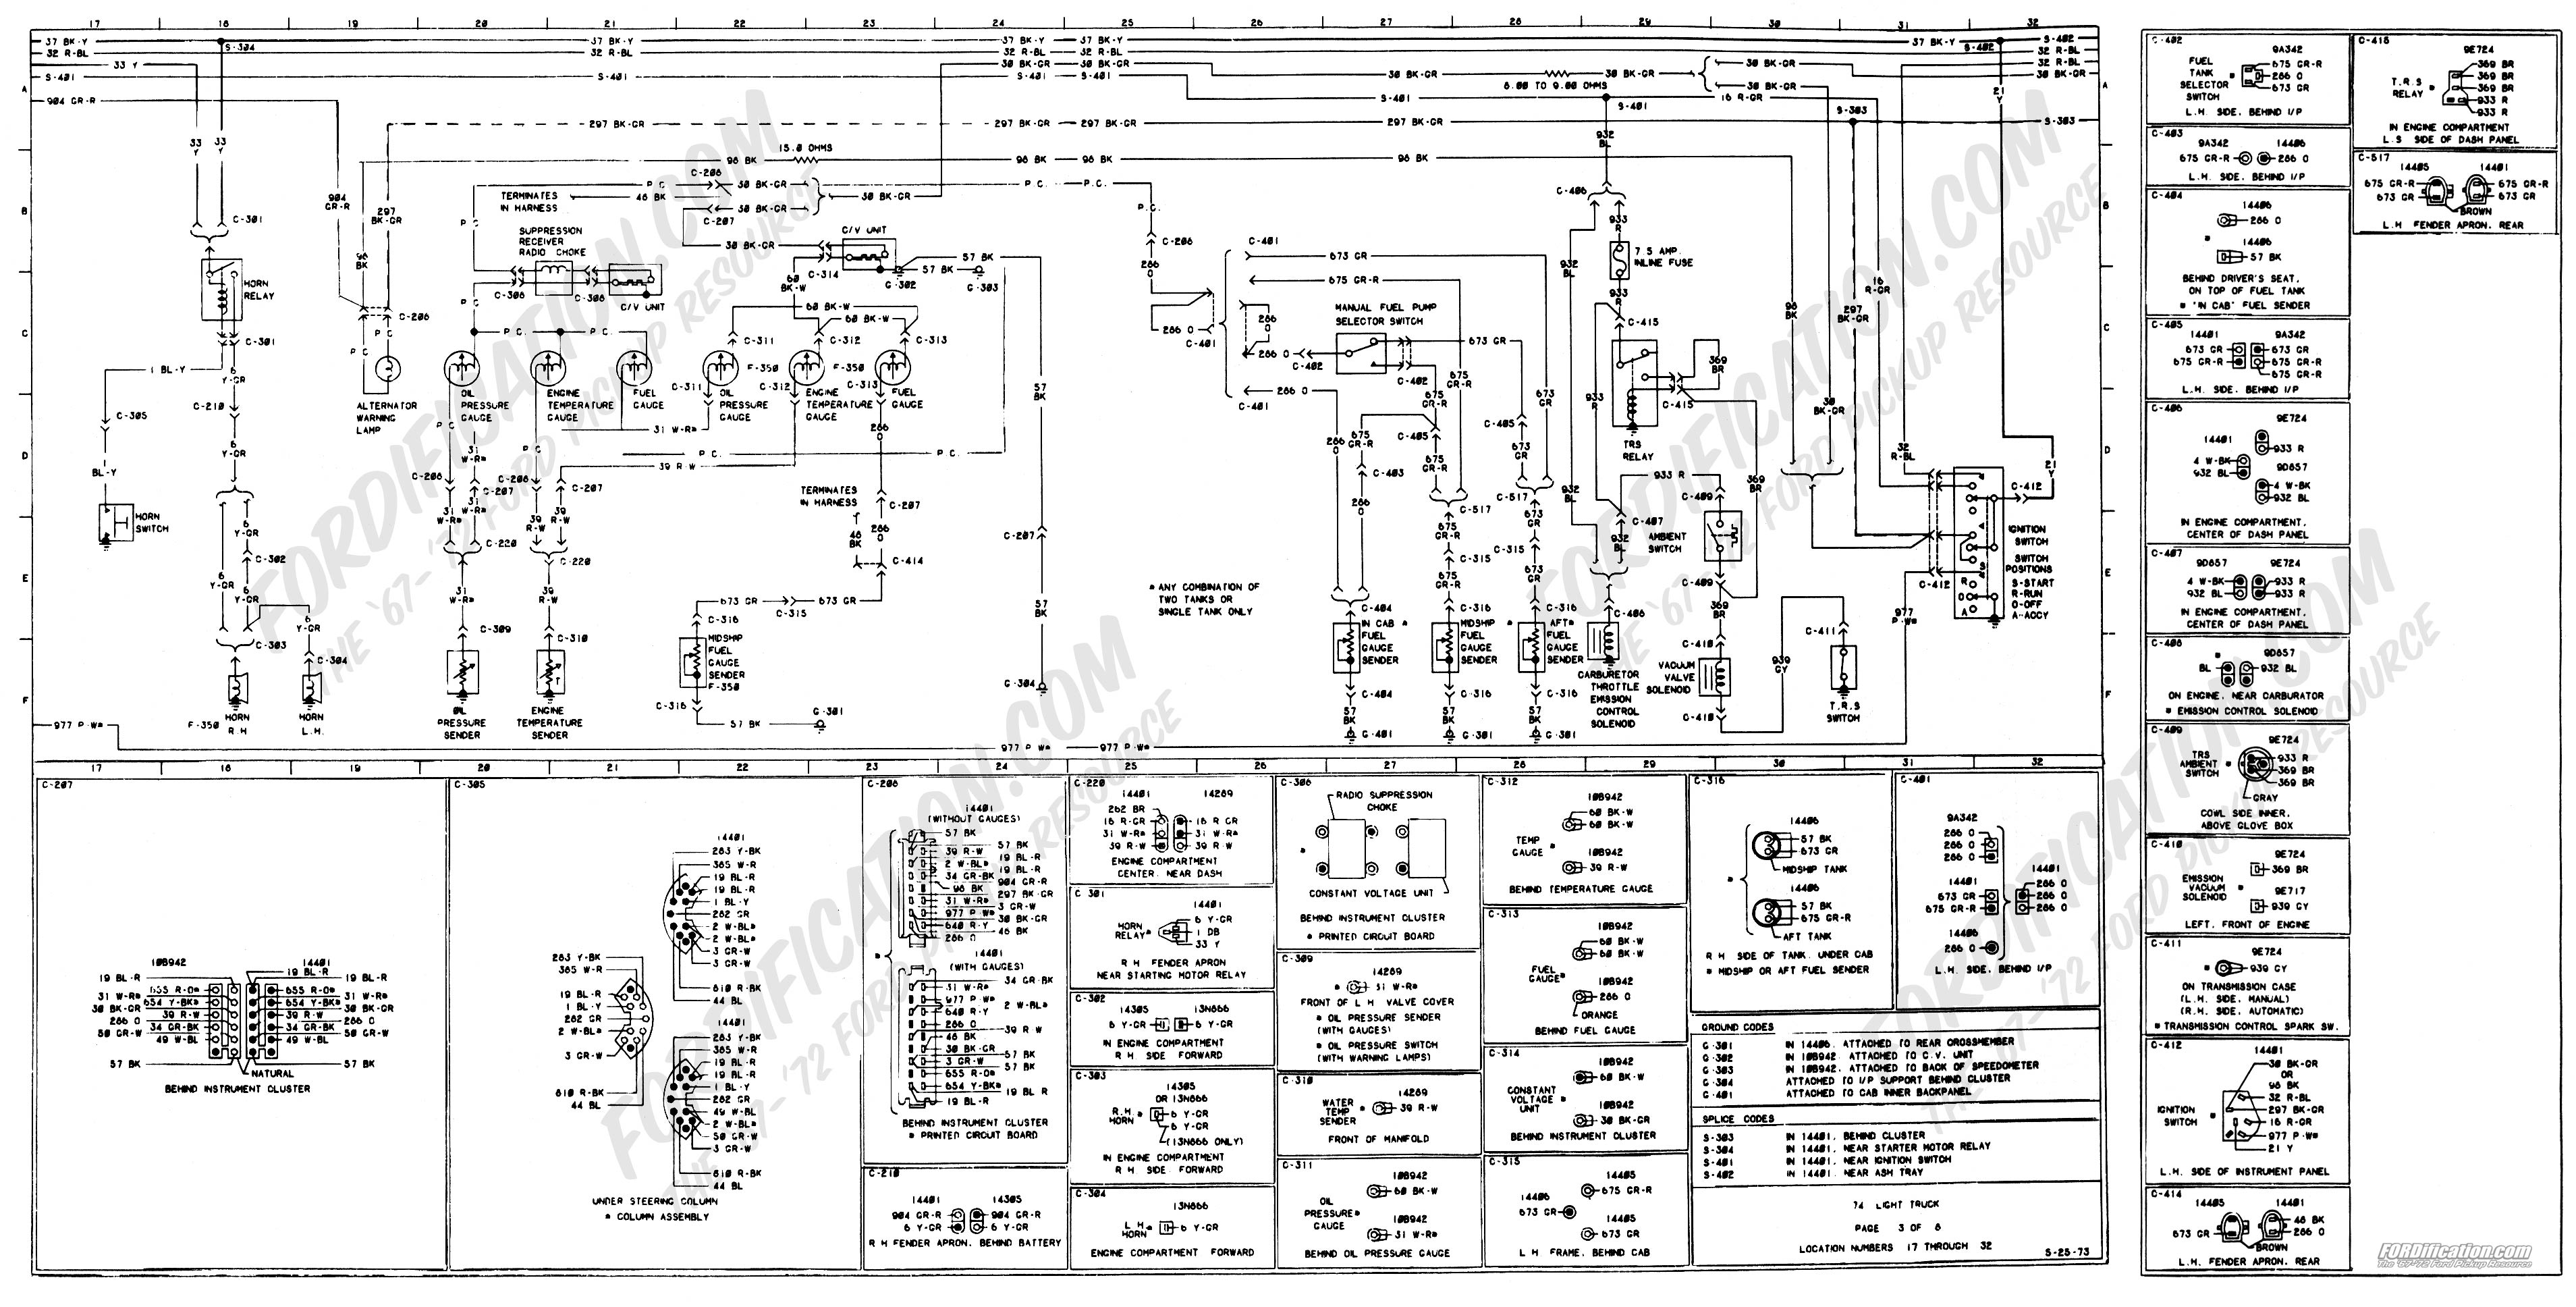 wiring_74master_3of8 1973 1979 ford truck wiring diagrams & schematics fordification net electrical wiring diagram ford transit download at mifinder.co